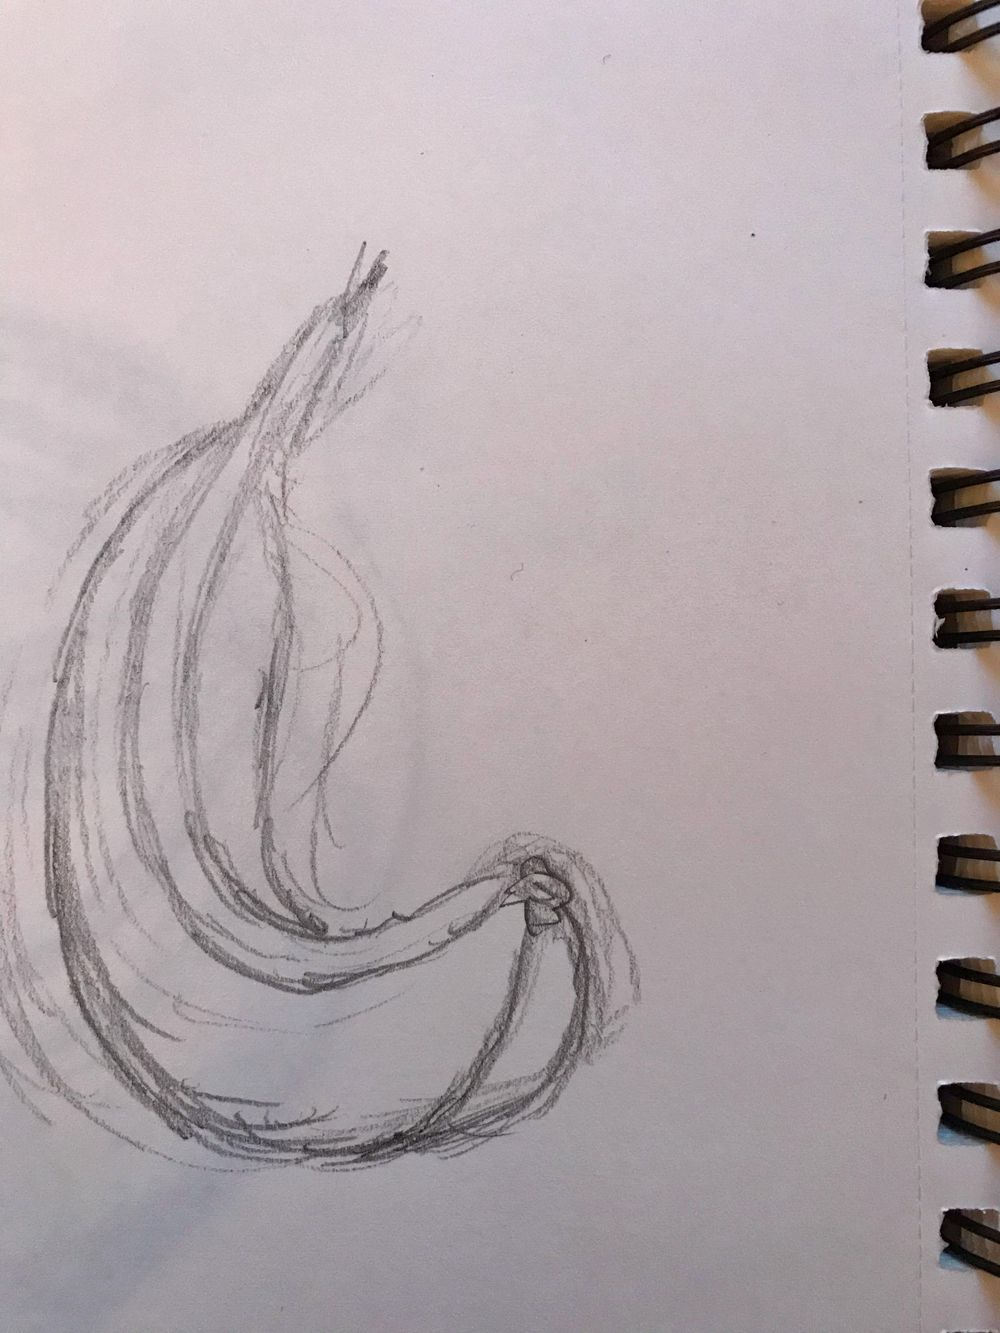 Starting to draw the contours - image 3 - student project